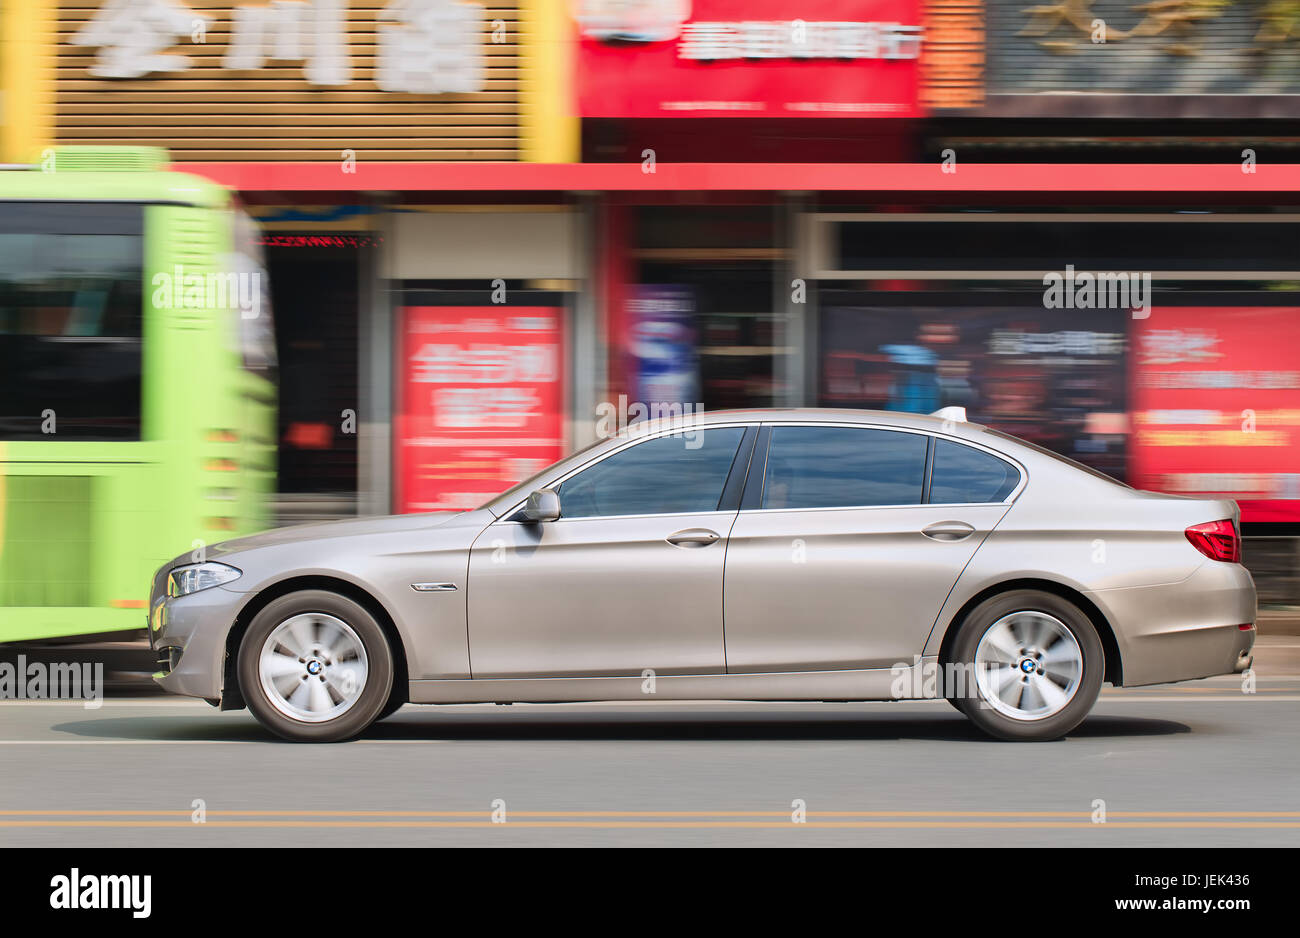 WENZHOU-CHINA-NOV. 19, 2014. BMW 5L series on the street. German Audi, BMW and Mercedes-Benz maintain a solid grip - Stock Image